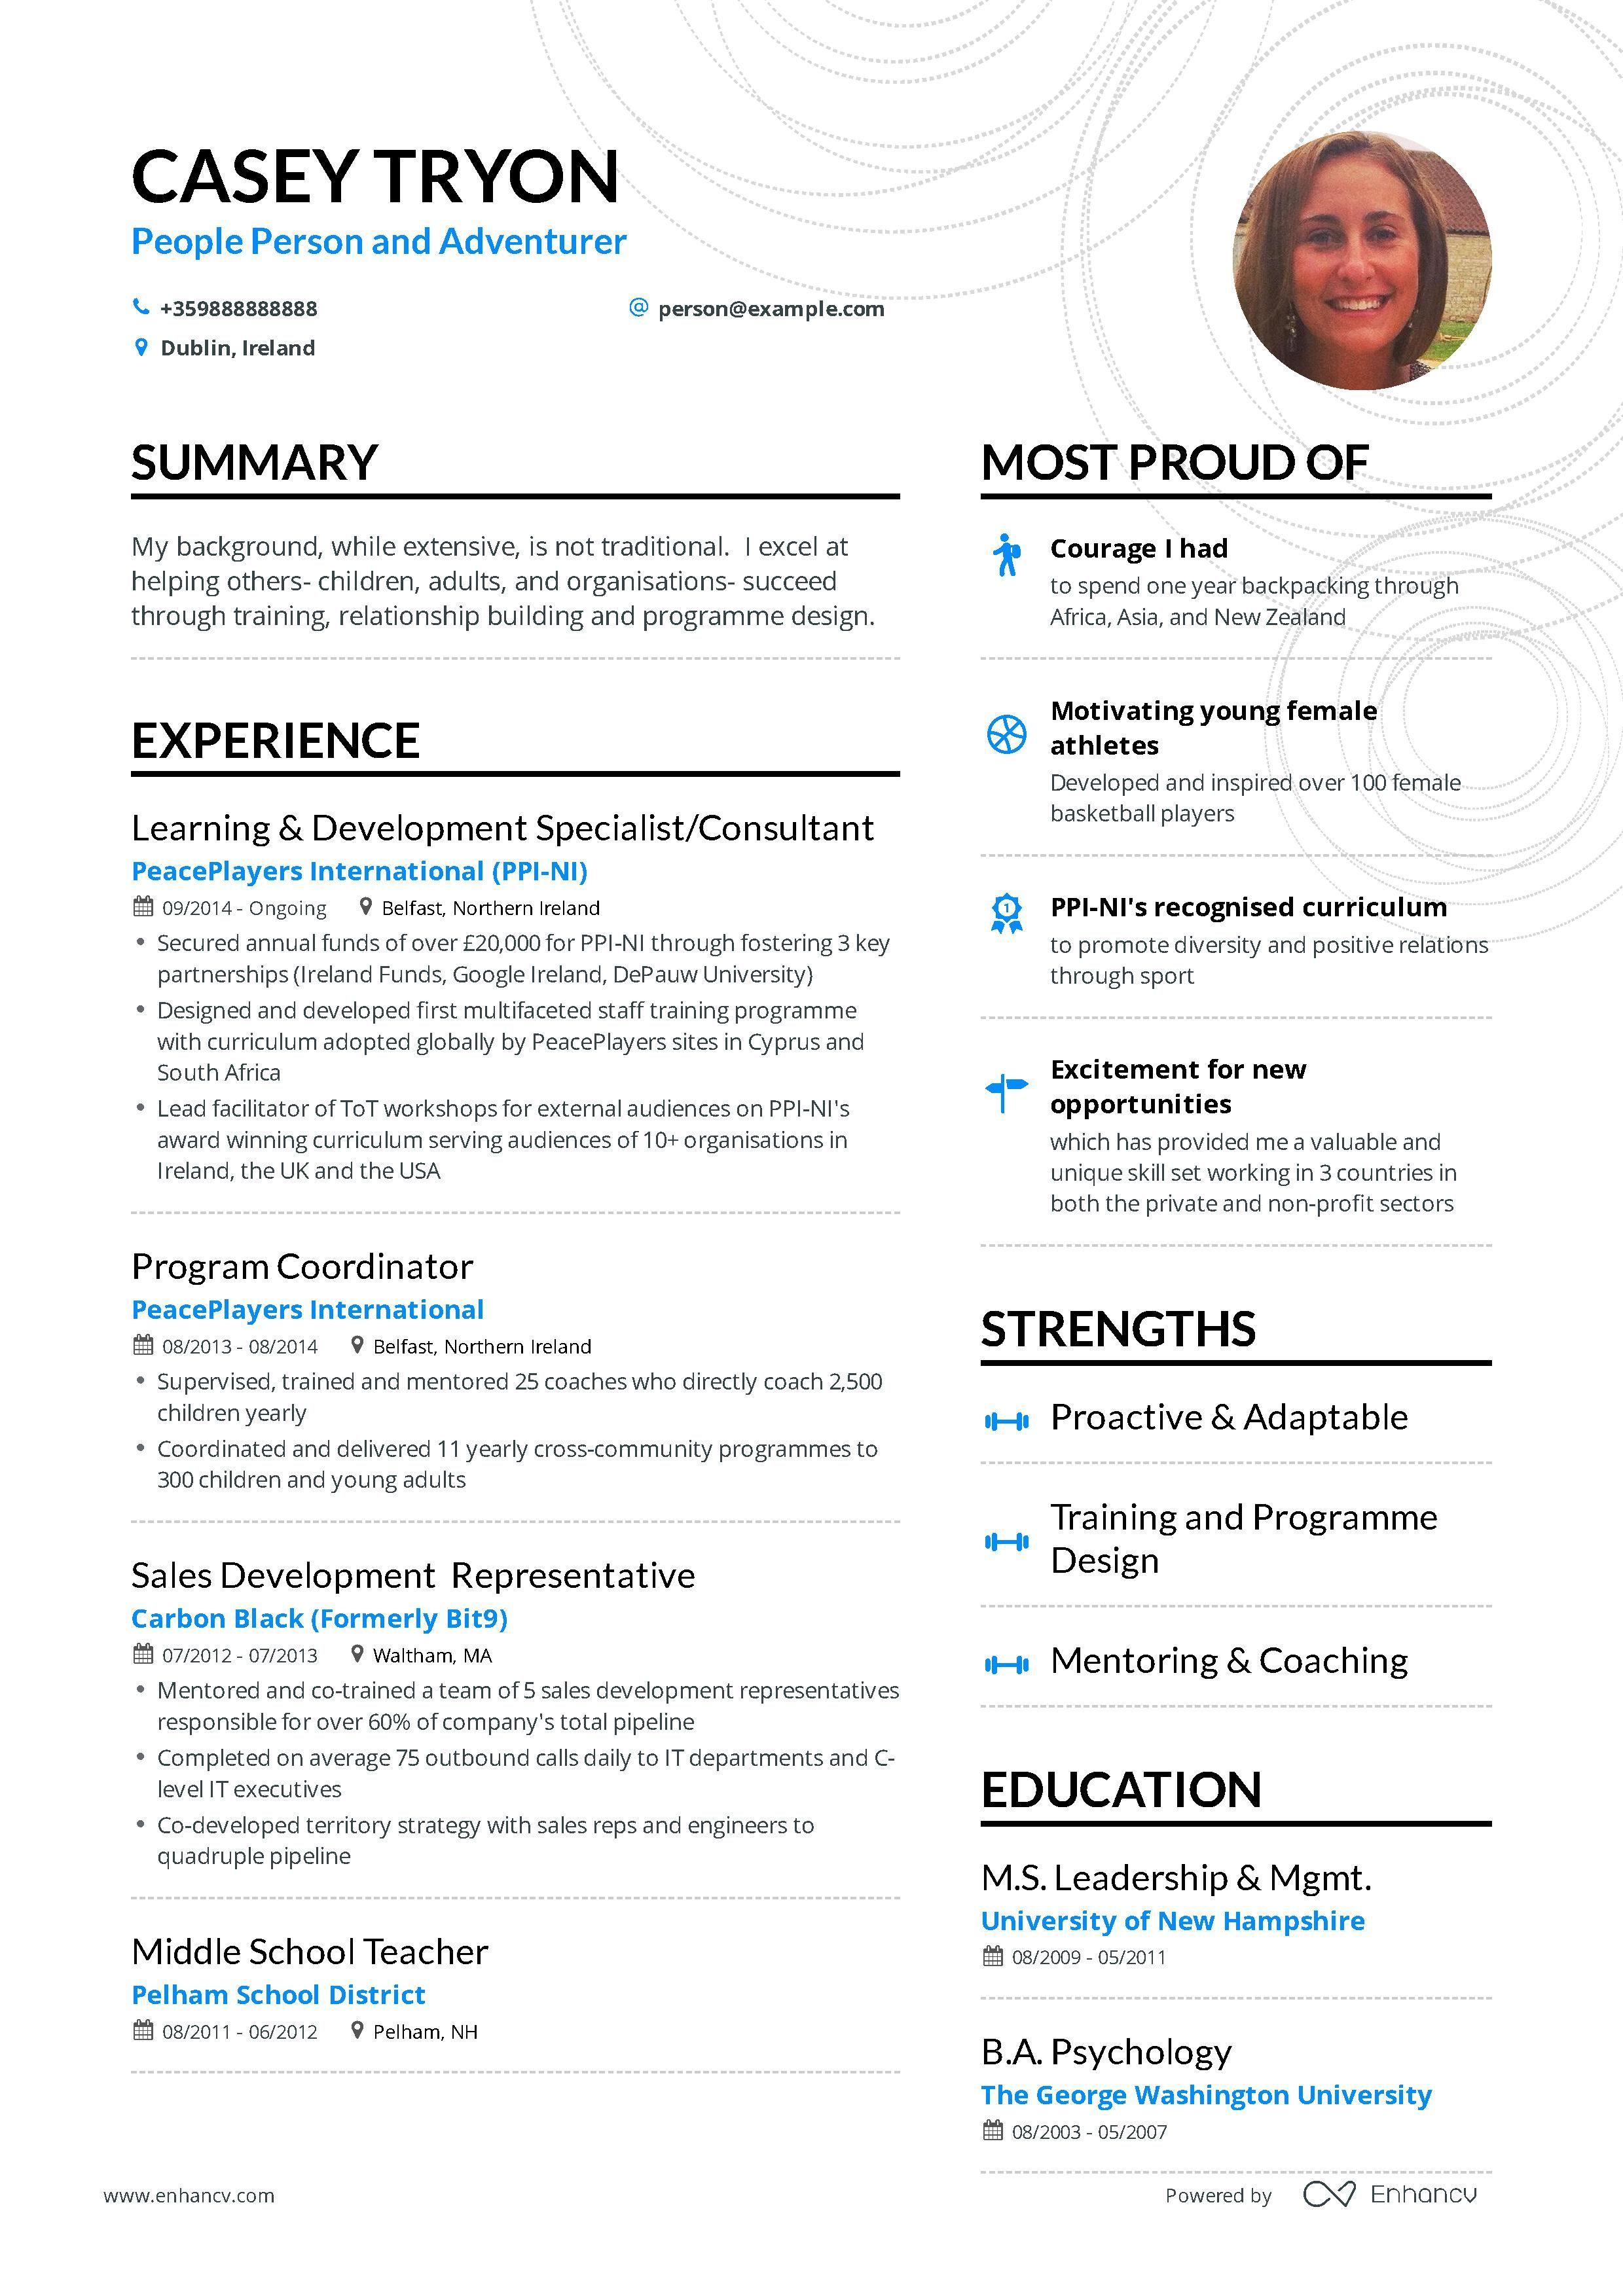 Download hr manager resume example for 2020 with images